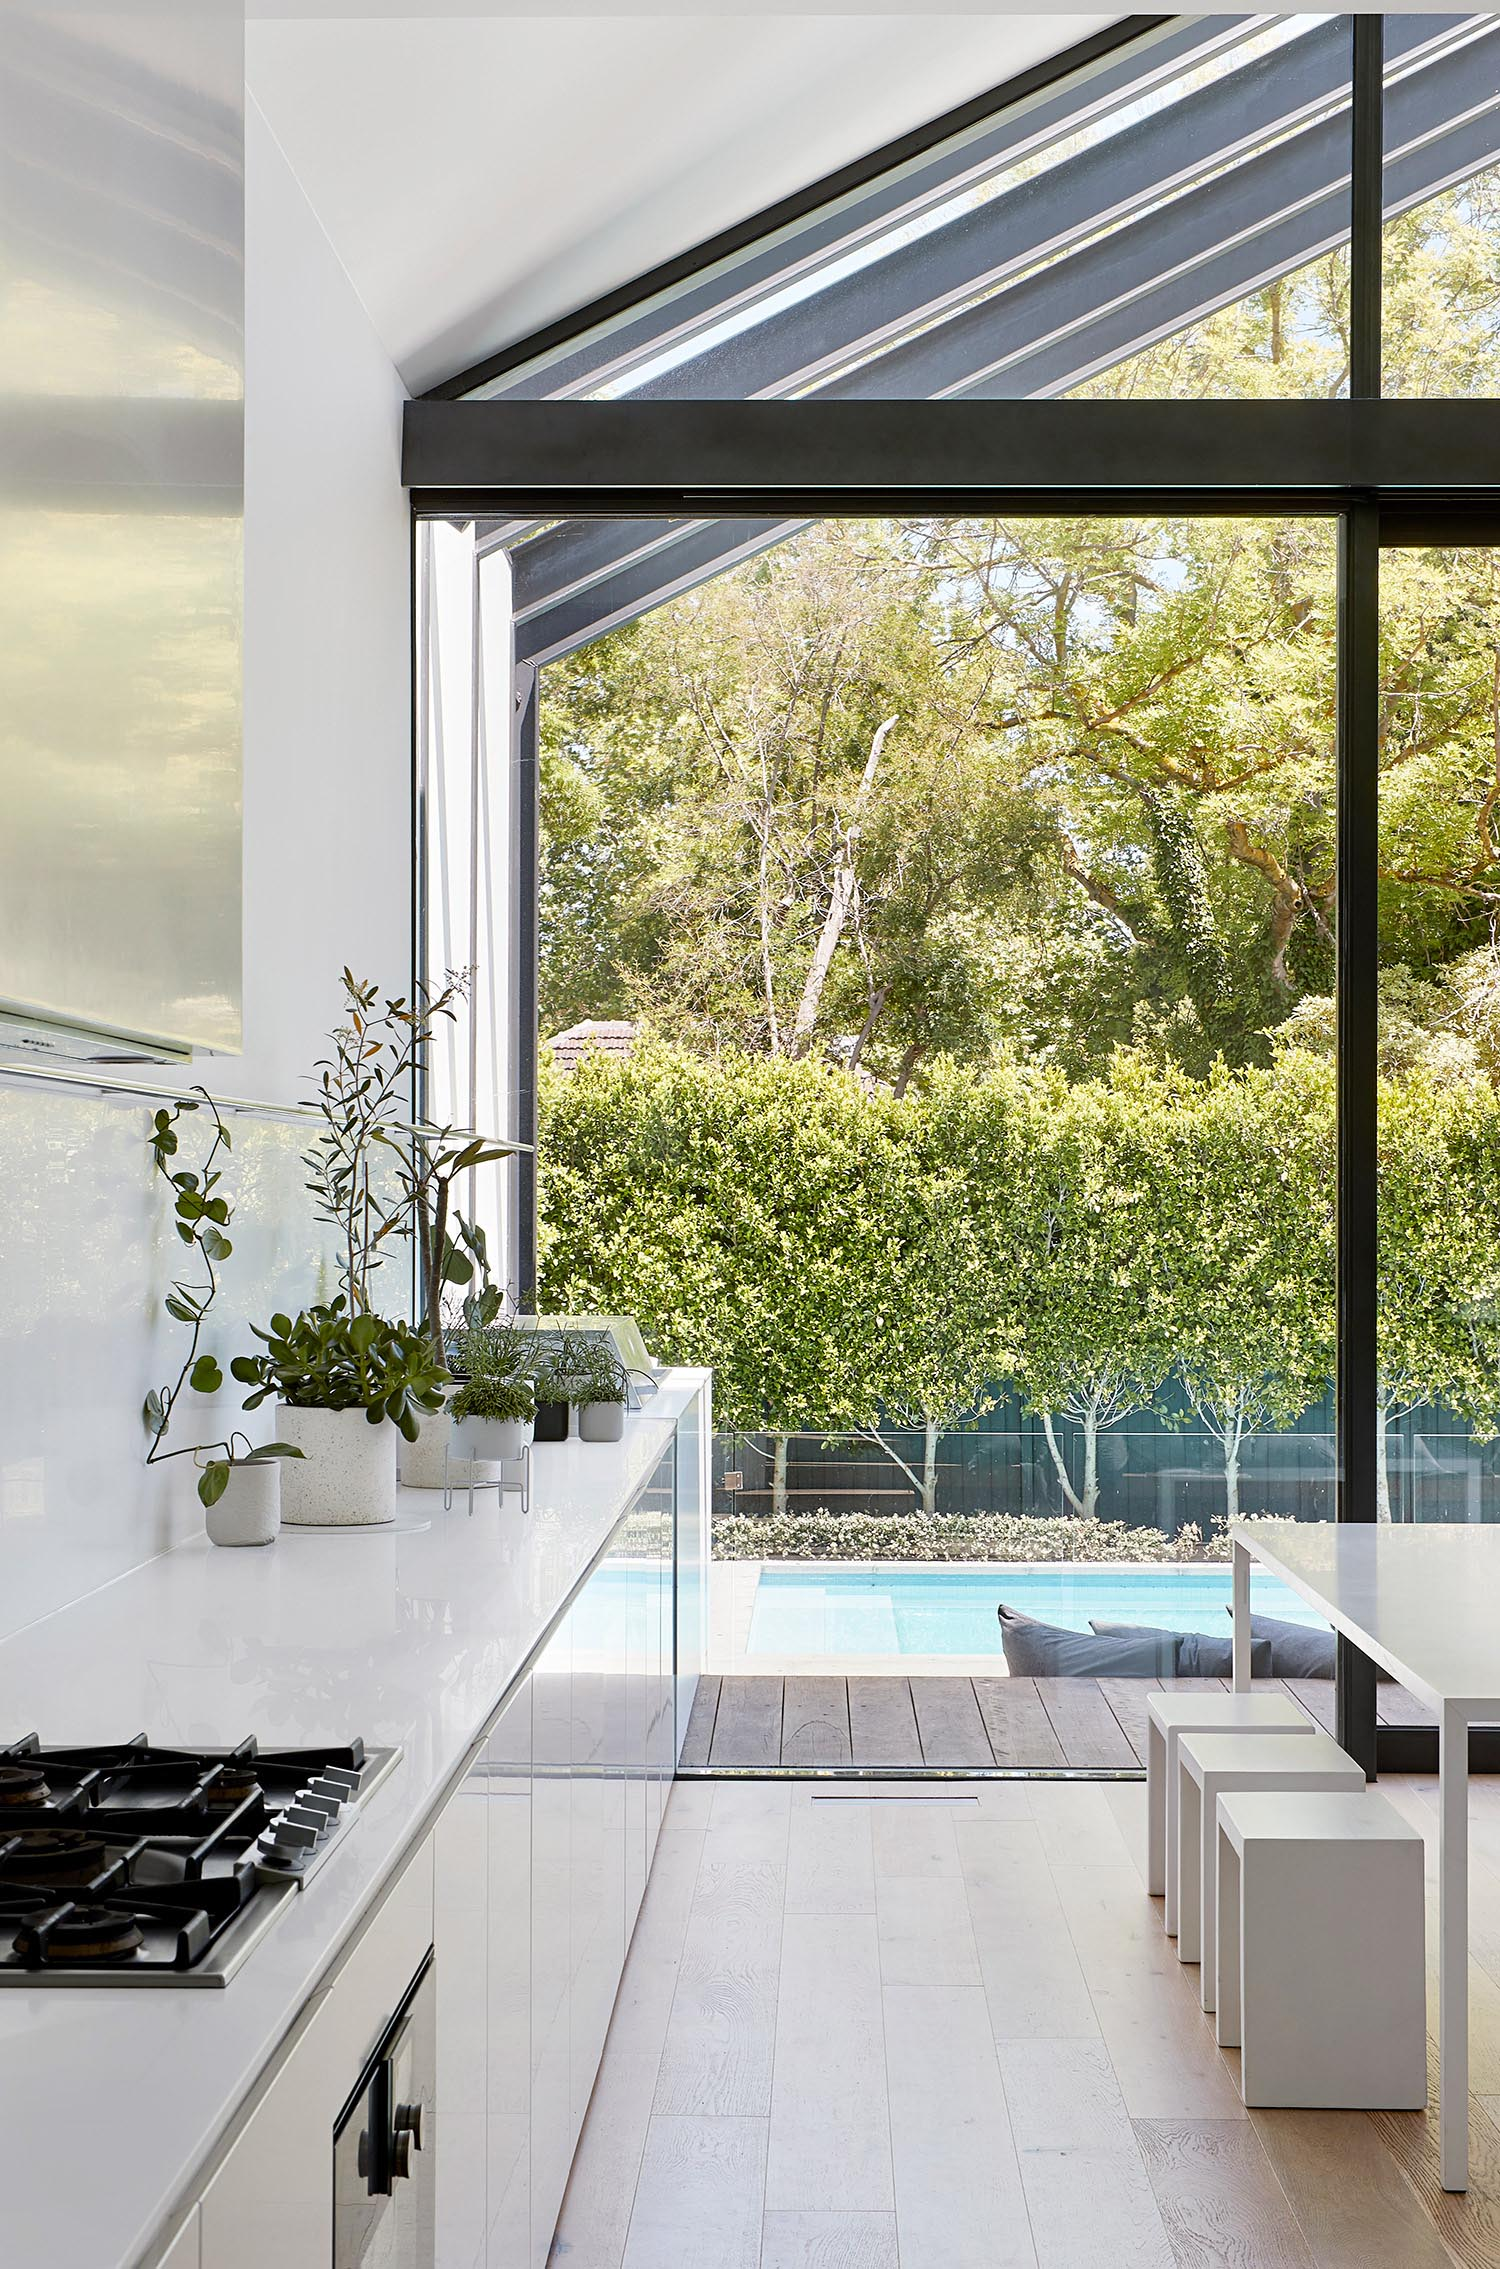 A modern white kitchen and dining room.